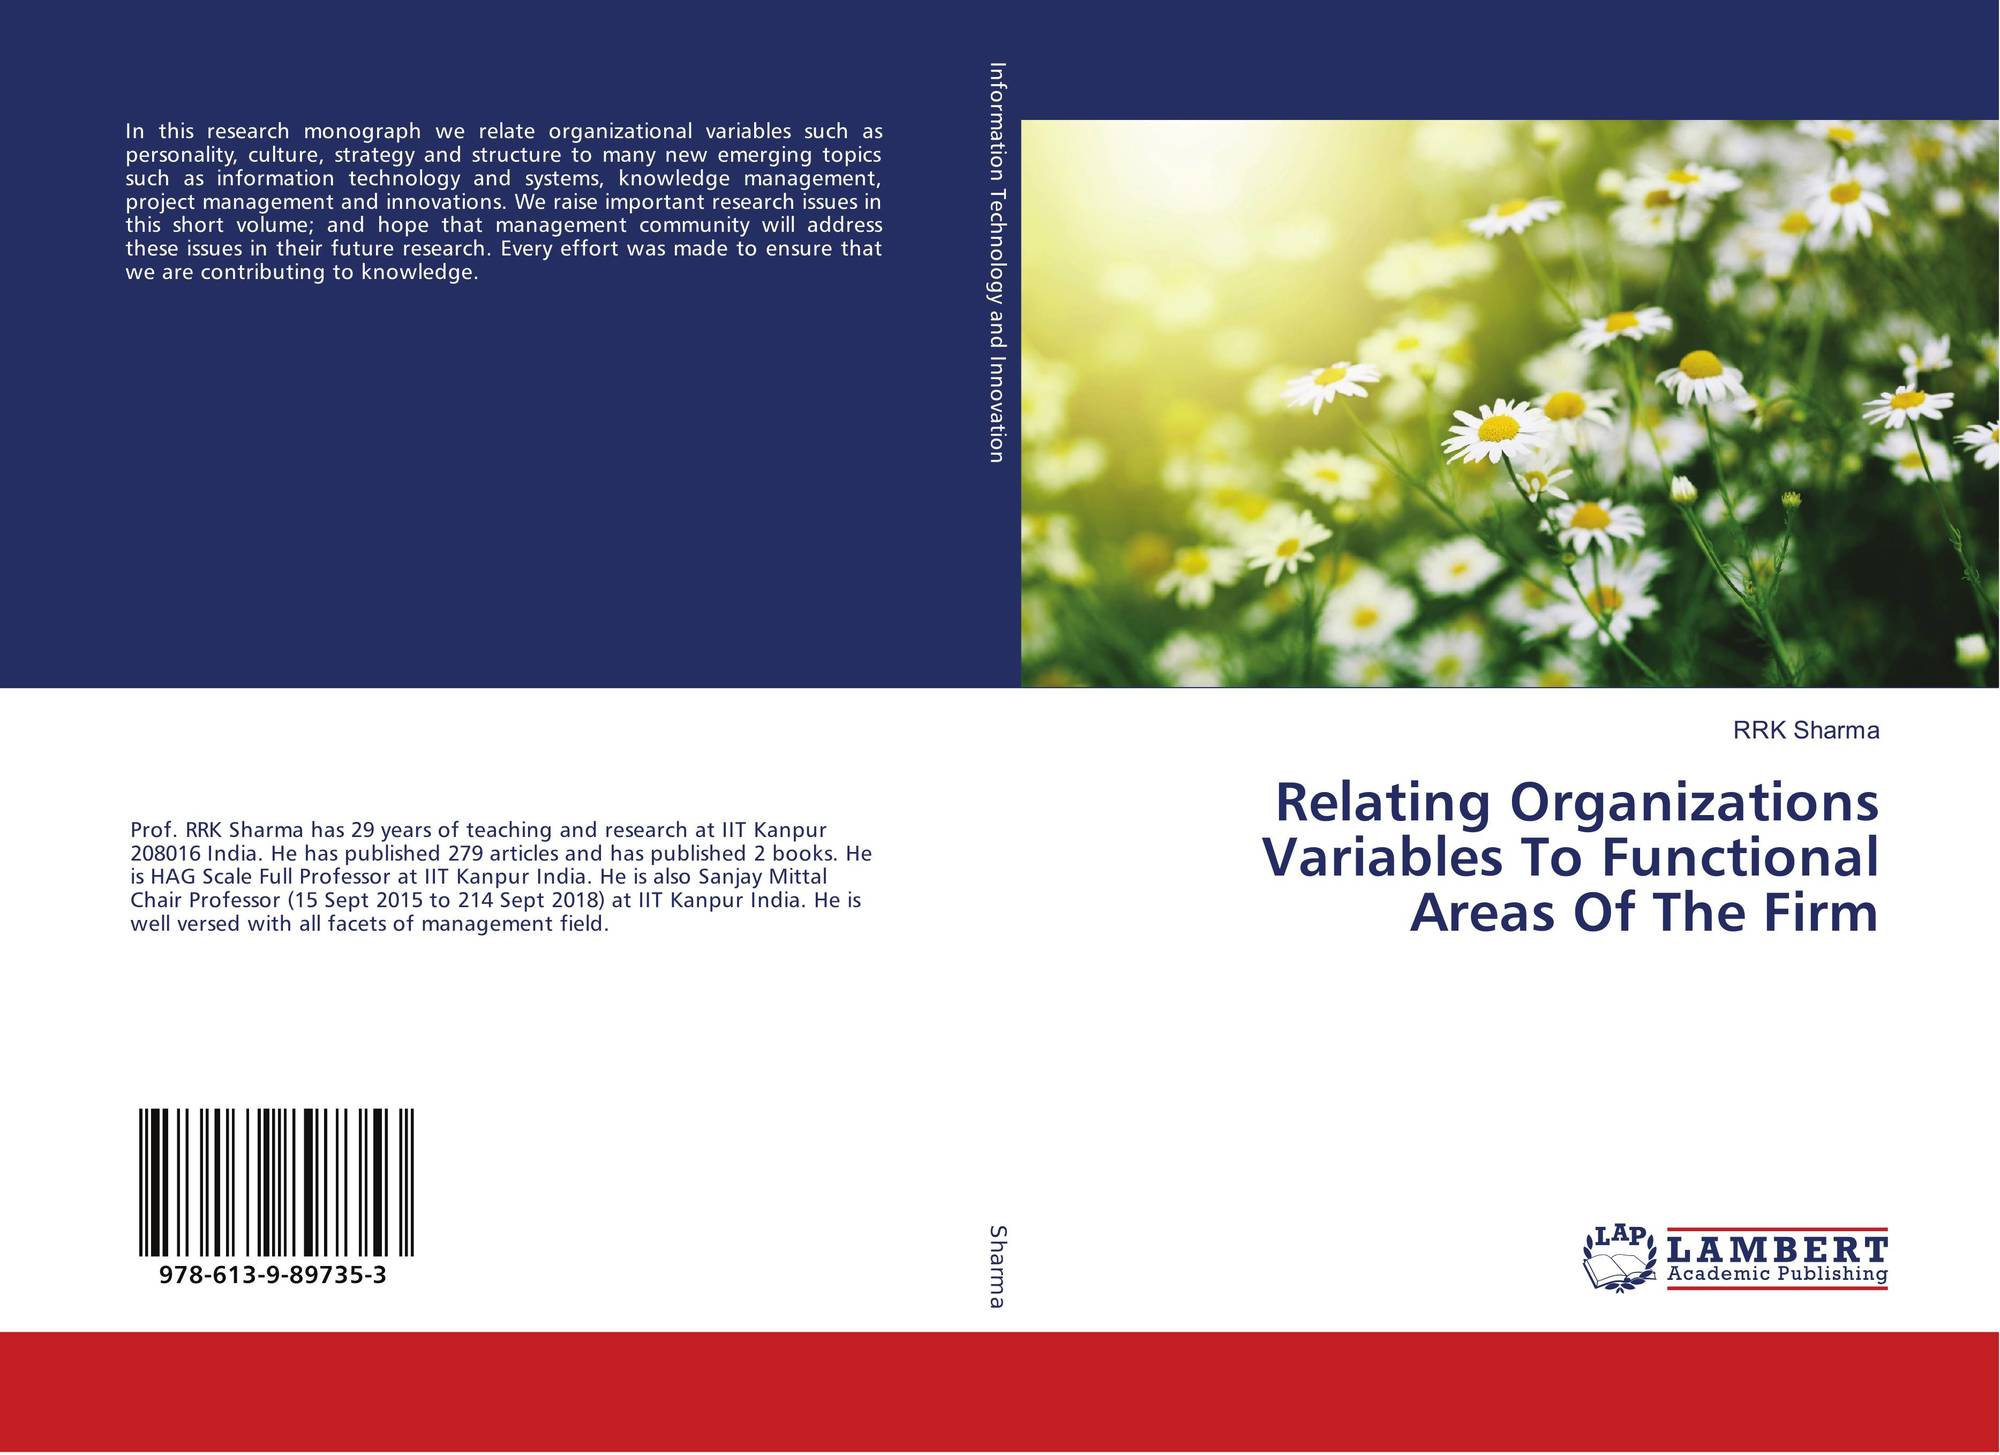 Relating Organizations Variables To Functional Areas Of The